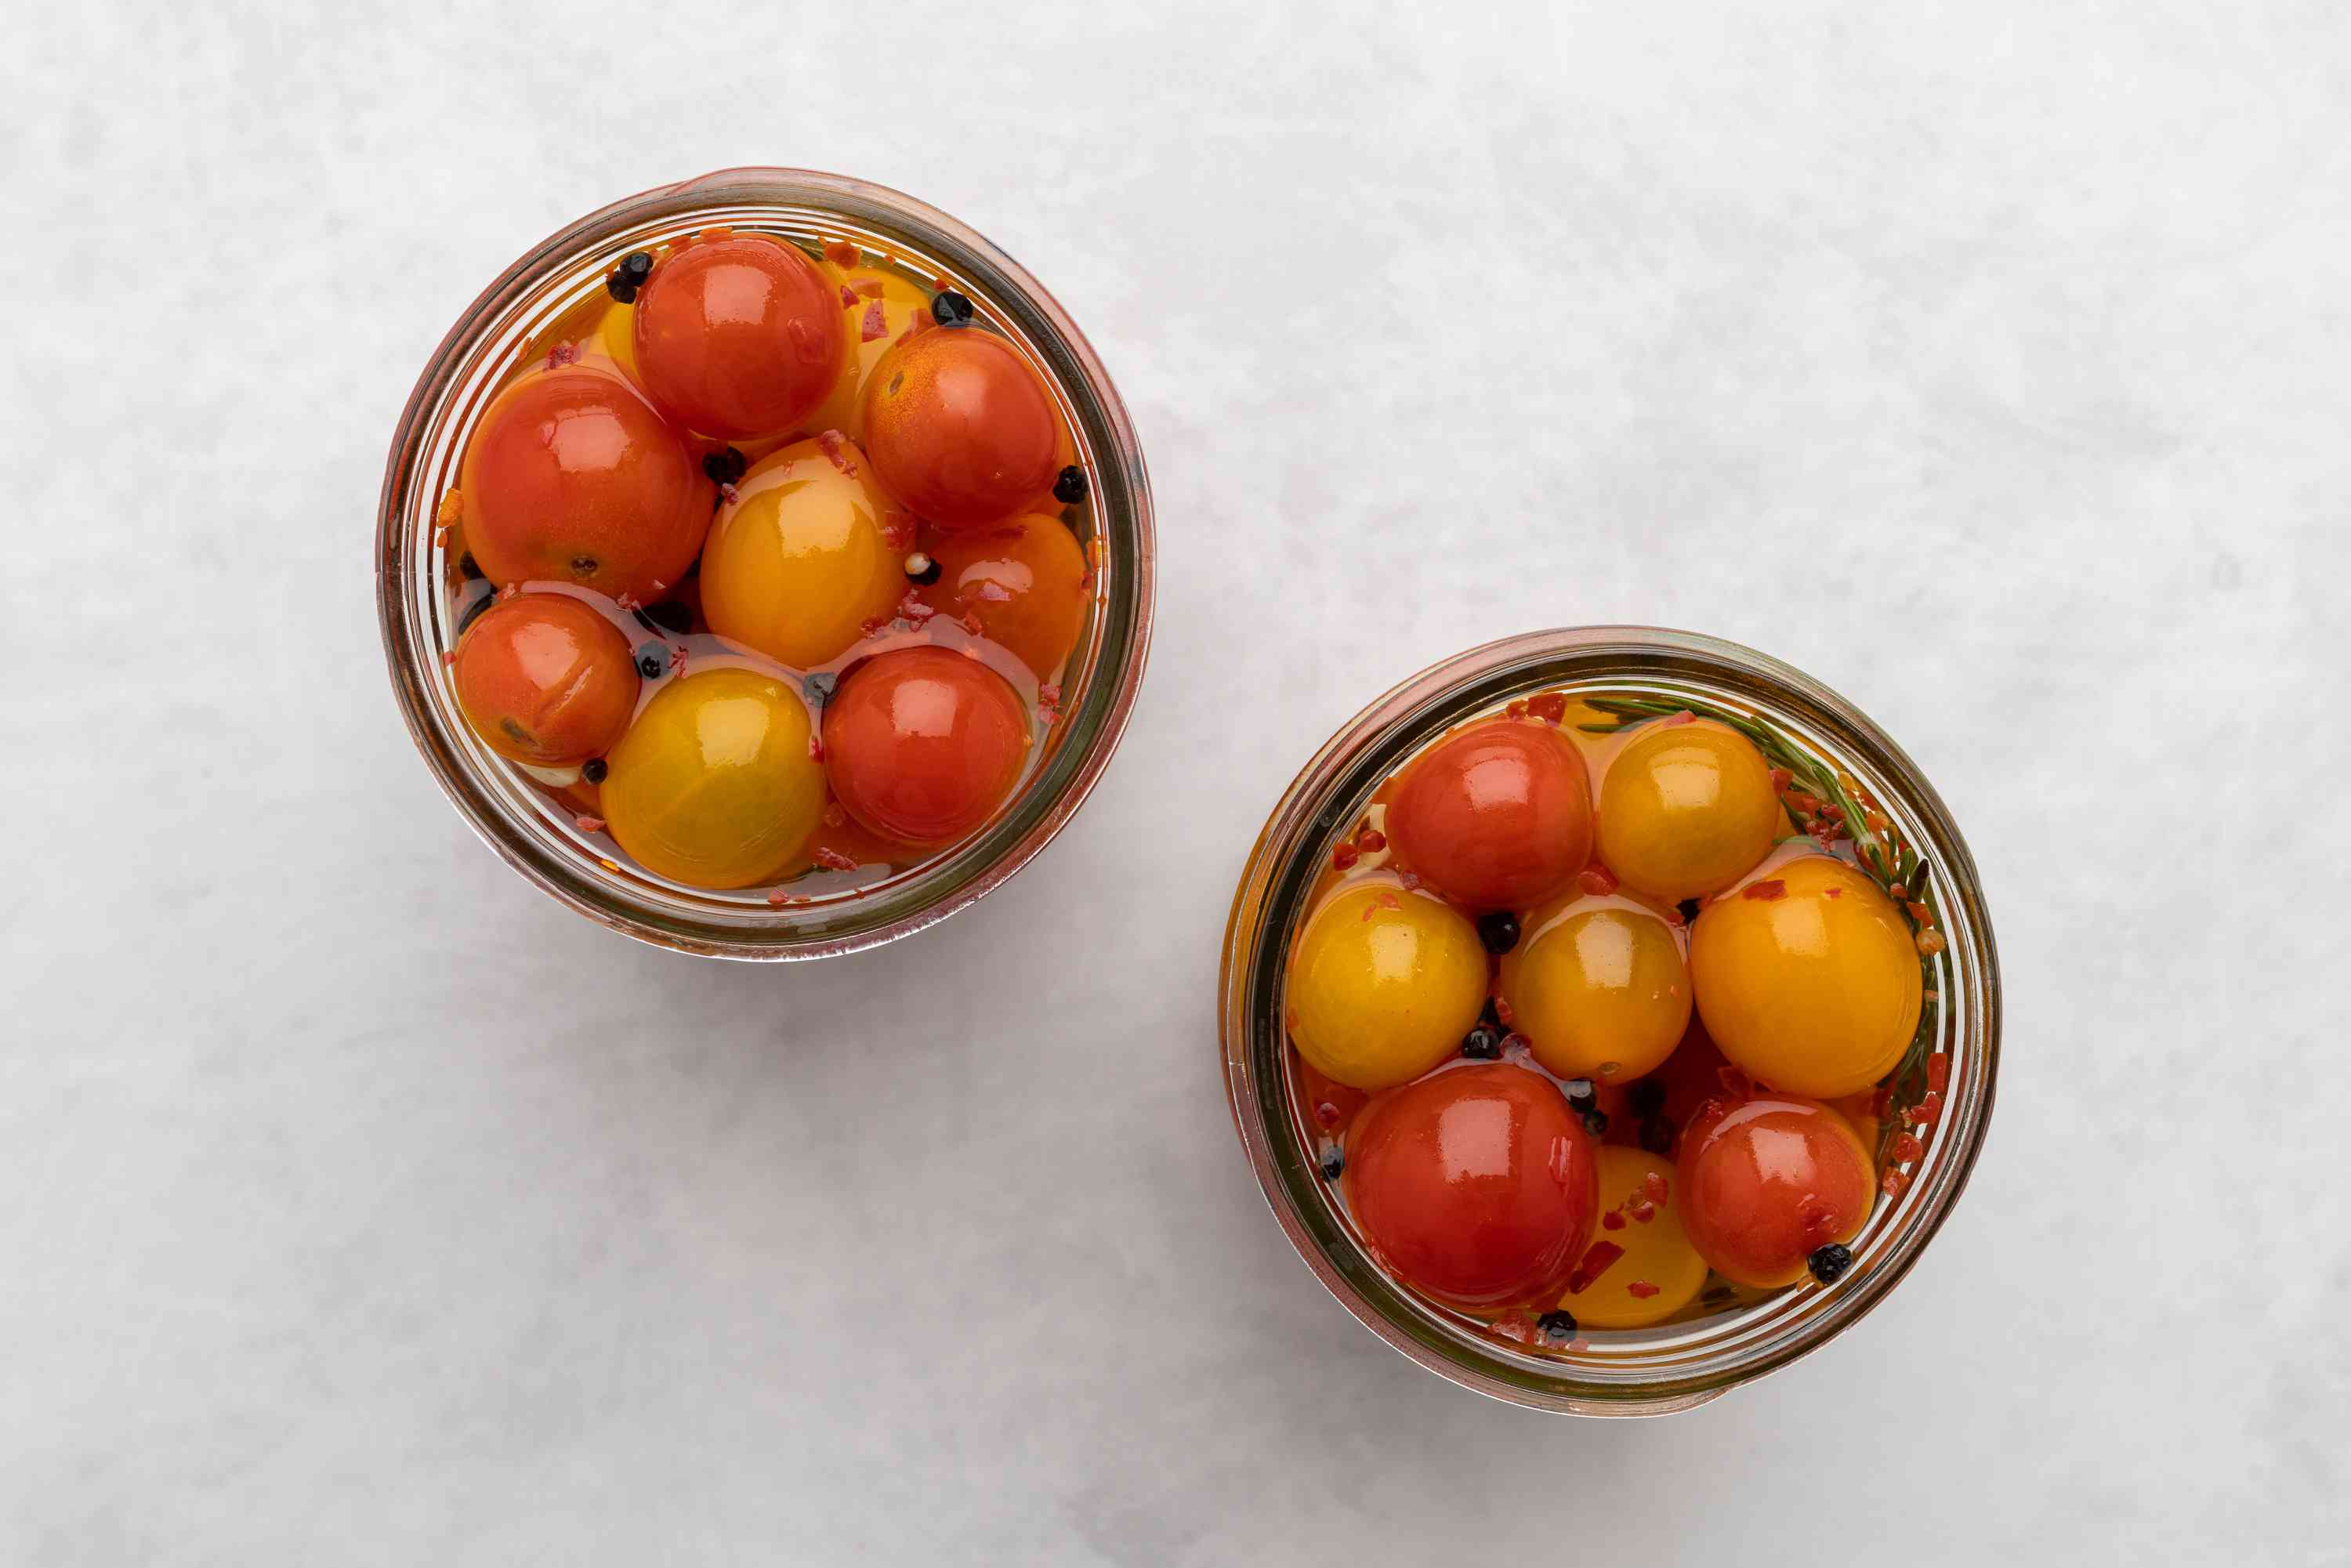 Pickled Cherry Tomatoes in jars